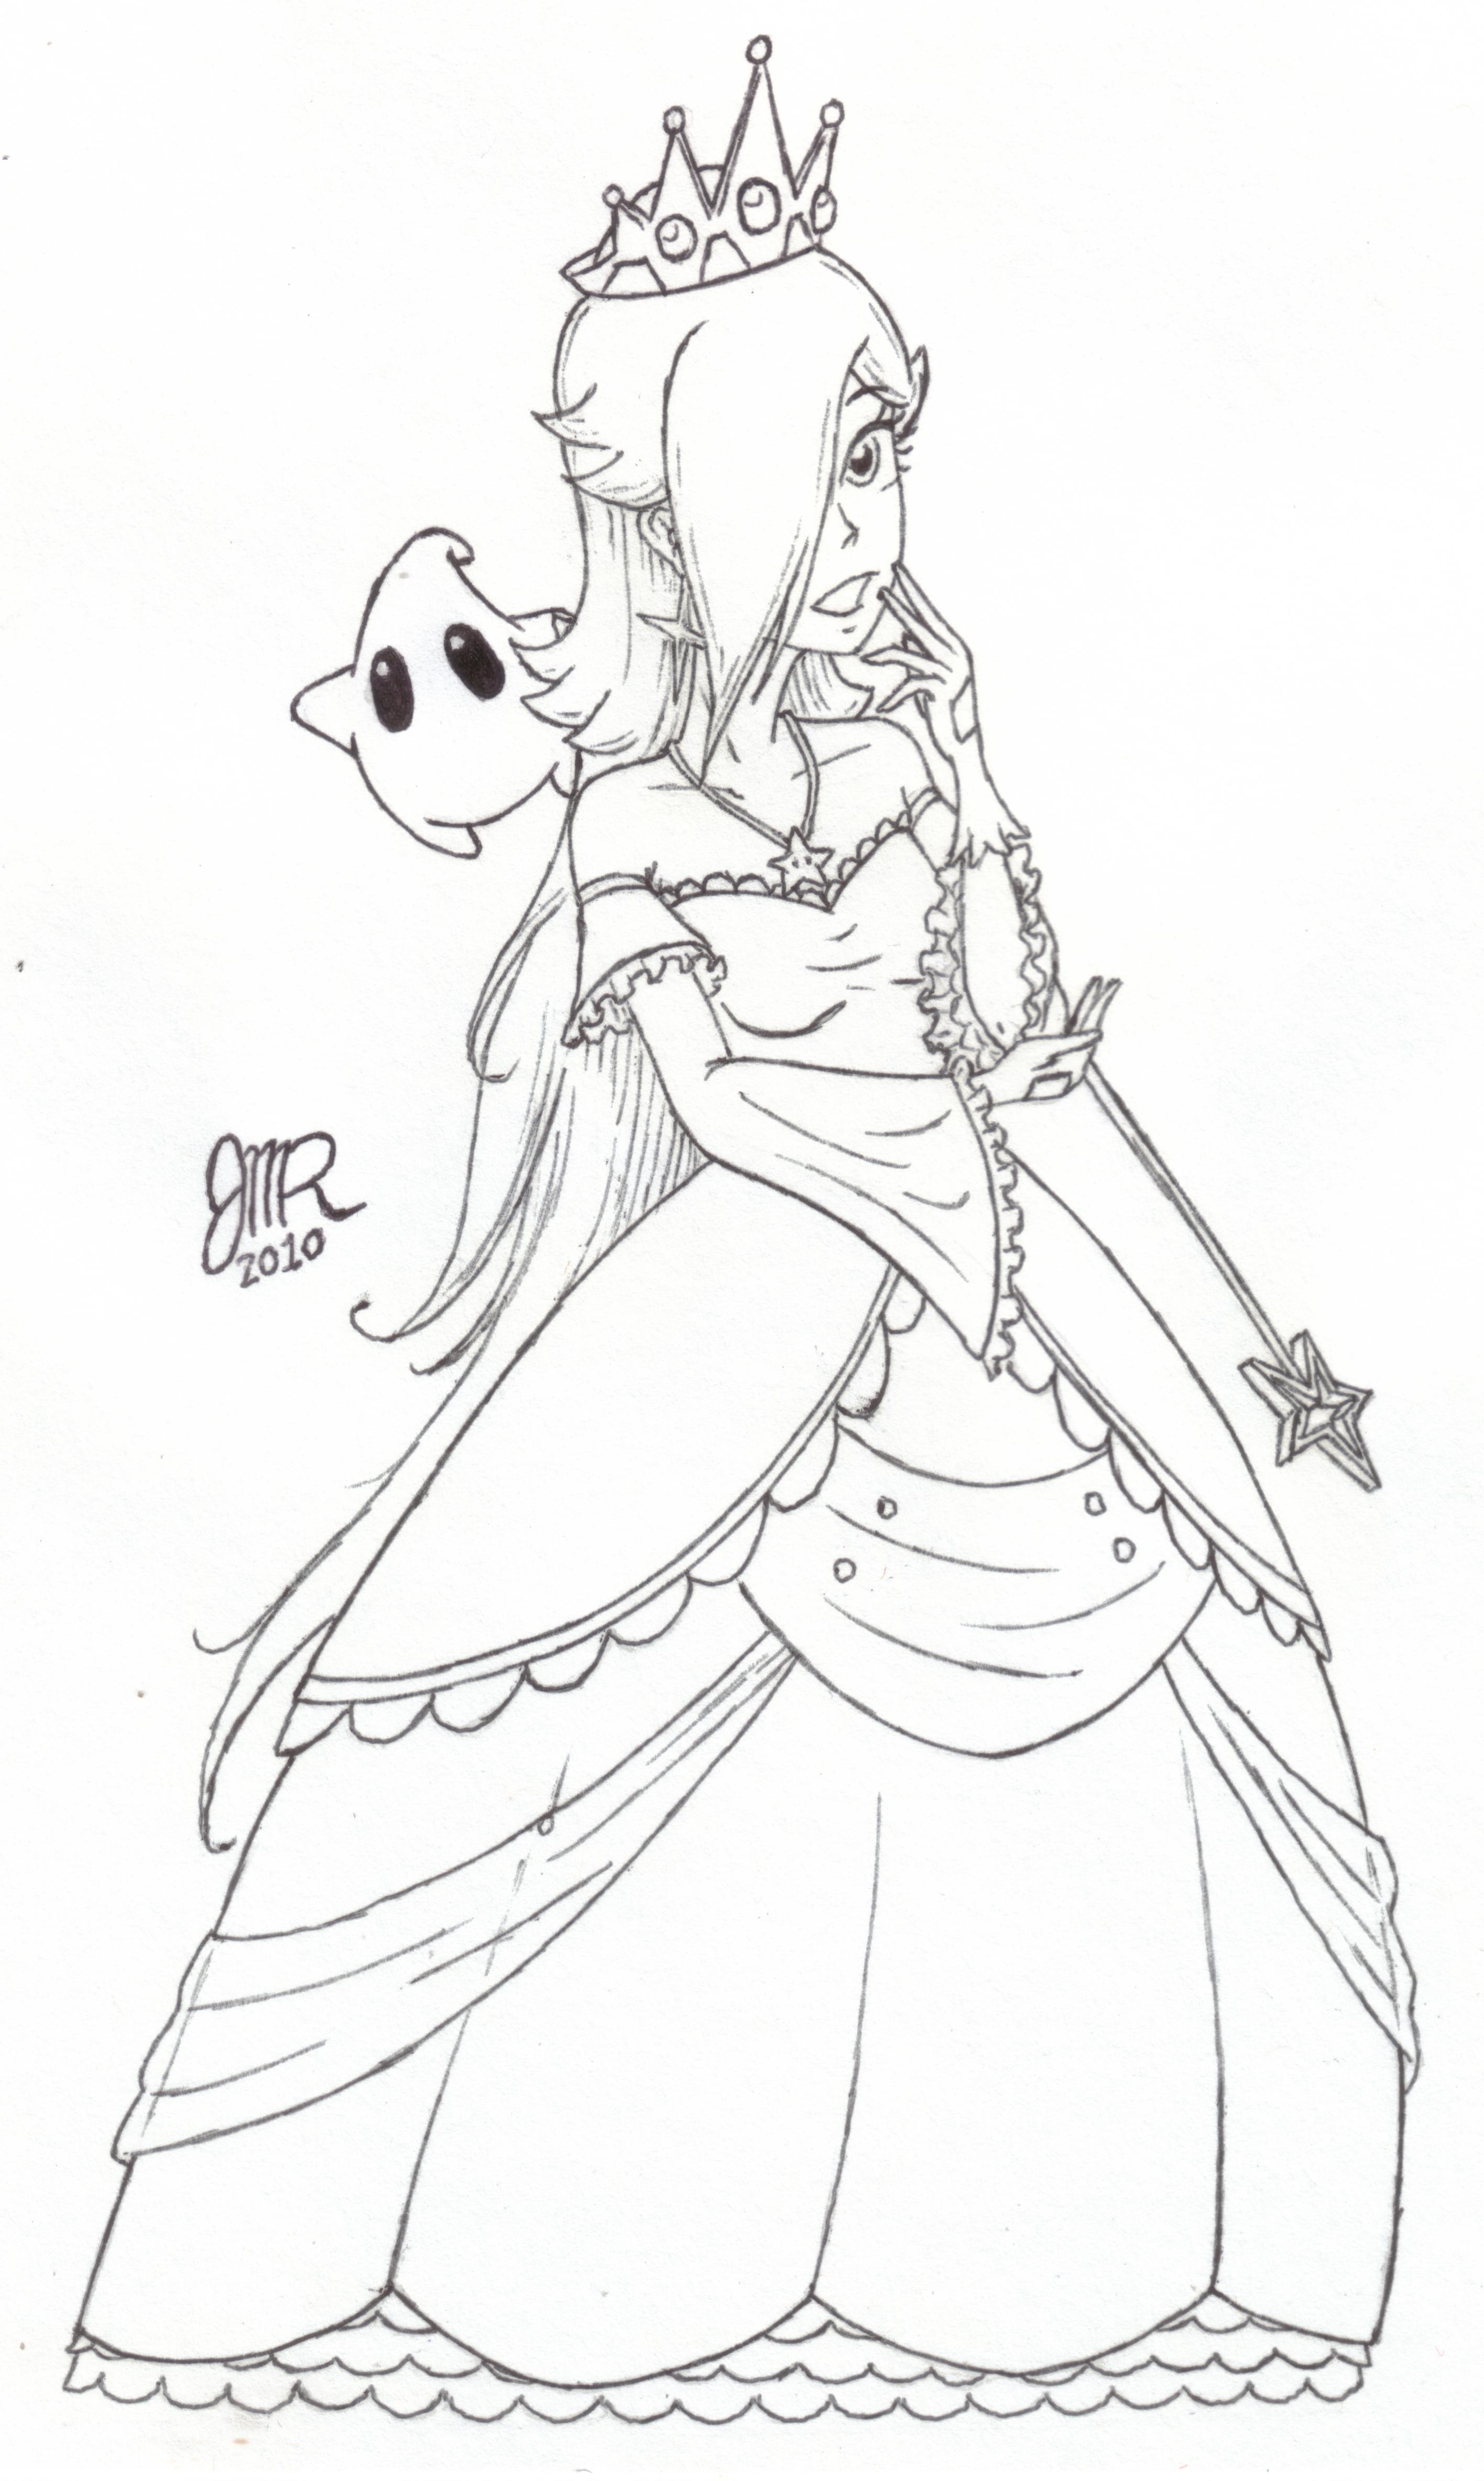 New dress for rosalina by jmr mobius 1 on deviantart for Rosalina coloring pages